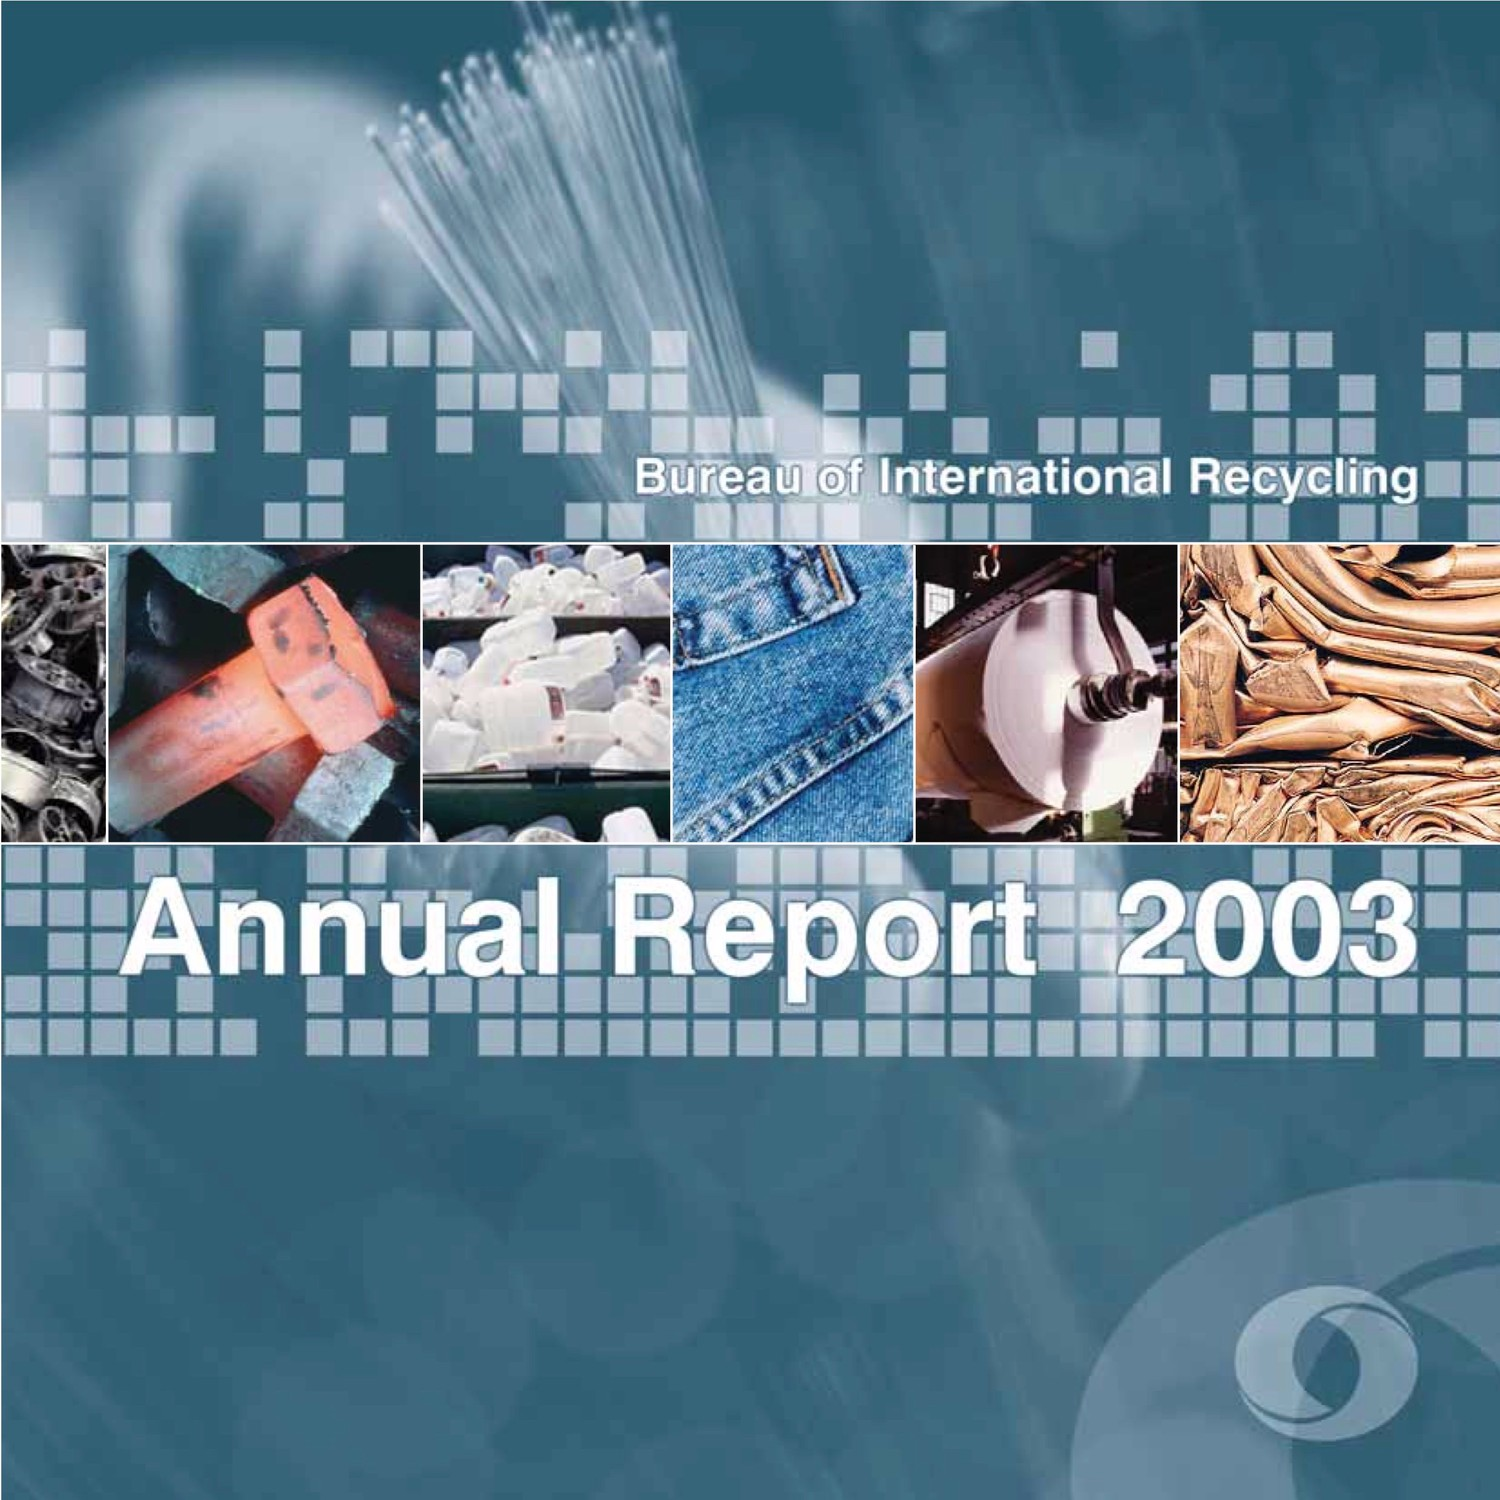 BIR Annual Report 2003